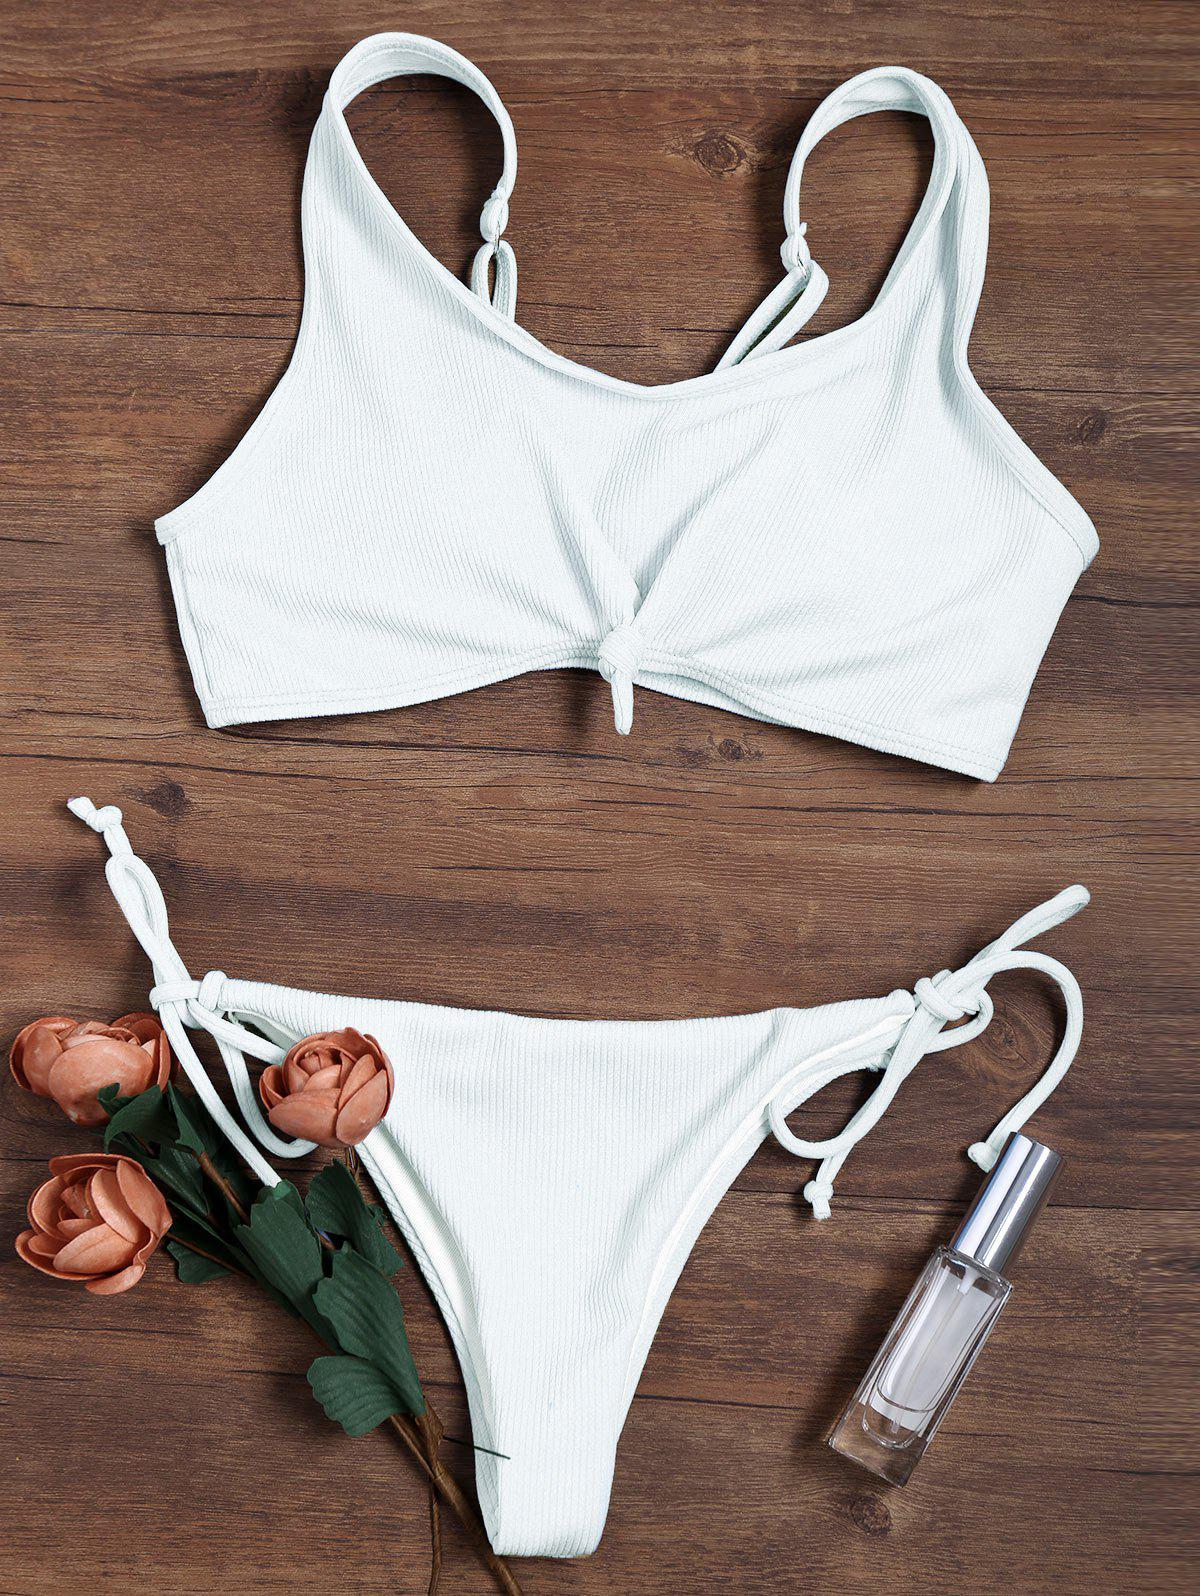 Knotted Adjustable Straps Ribbed String Bikini SwimsuitWOMEN<br><br>Size: S; Color: WHITE; Style: Sport; Swimwear Type: Bikini; Bikini Type: String Bikini; Gender: For Women; Material: Chinlon,Polyester; Bra Style: Padded; Support Type: Wire Free; Neckline: Scoop Neck; Pattern Type: Solid Color; Embellishment: Lace up; Waist: Low Waisted; Elasticity: Elastic; Weight: 0.1800kg; Package Contents: 1 x Bra  1 x Briefs;